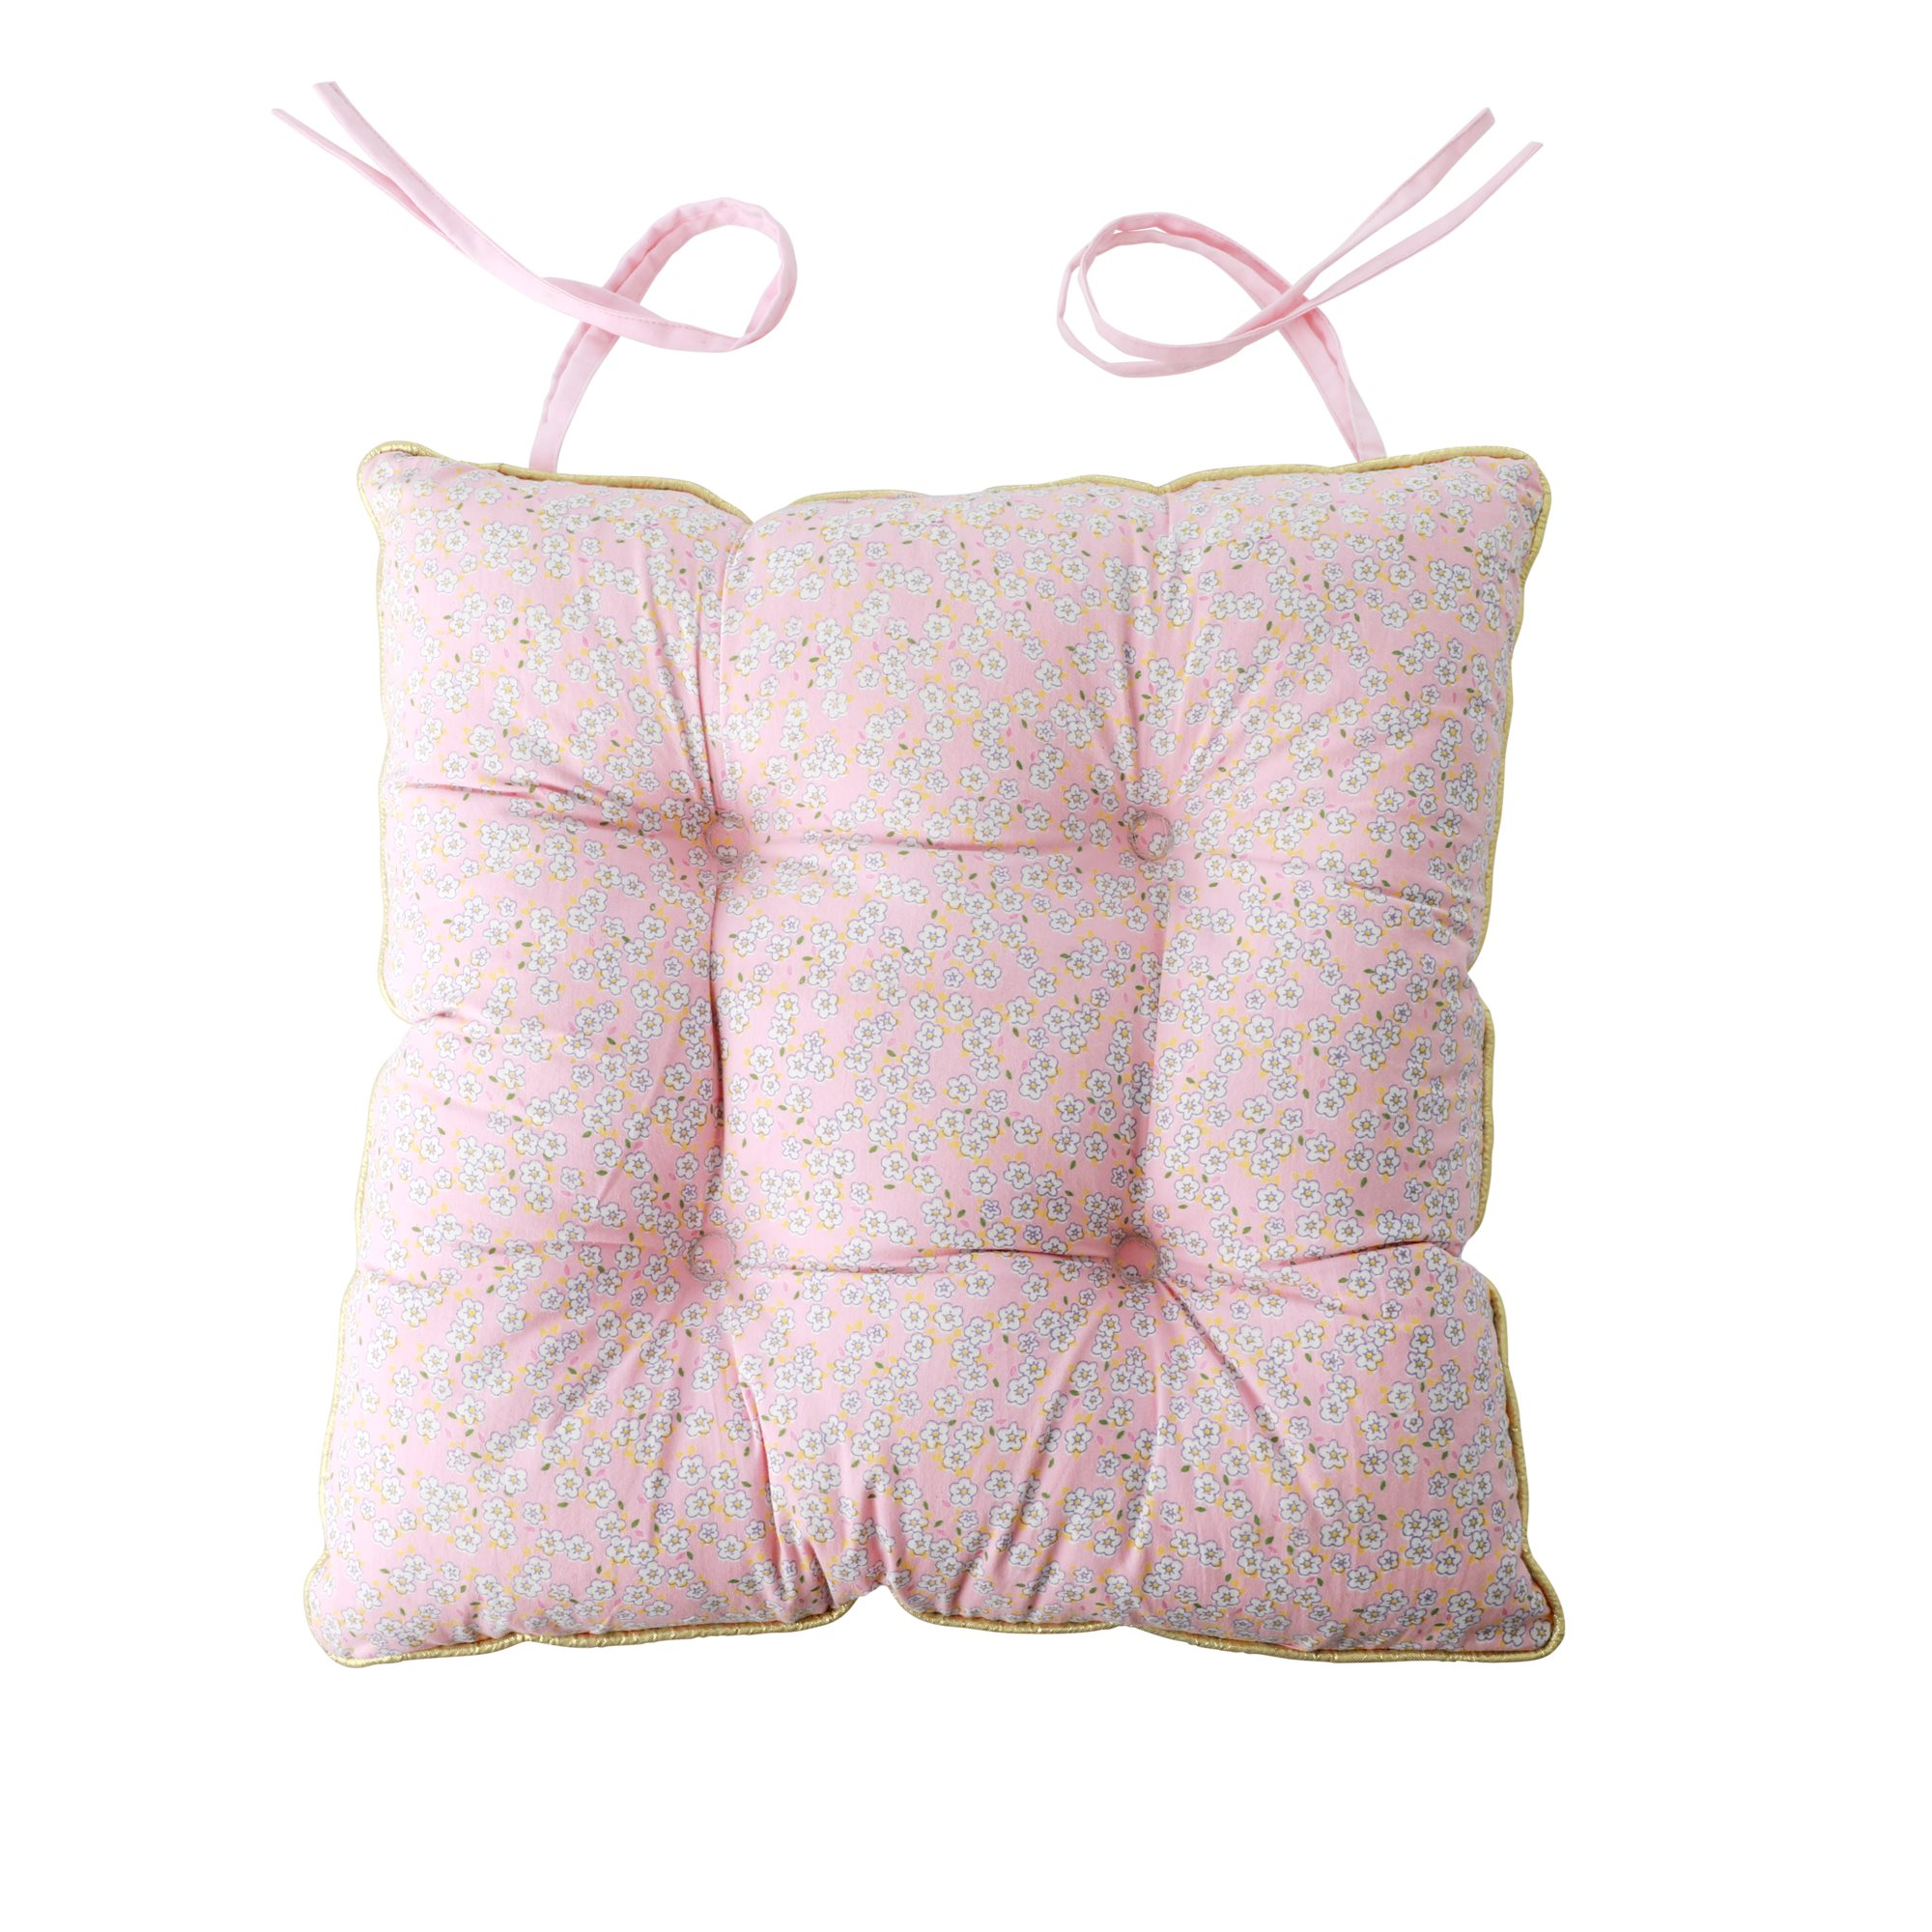 Rice - Chair Cushion - Pink Small Flower Print